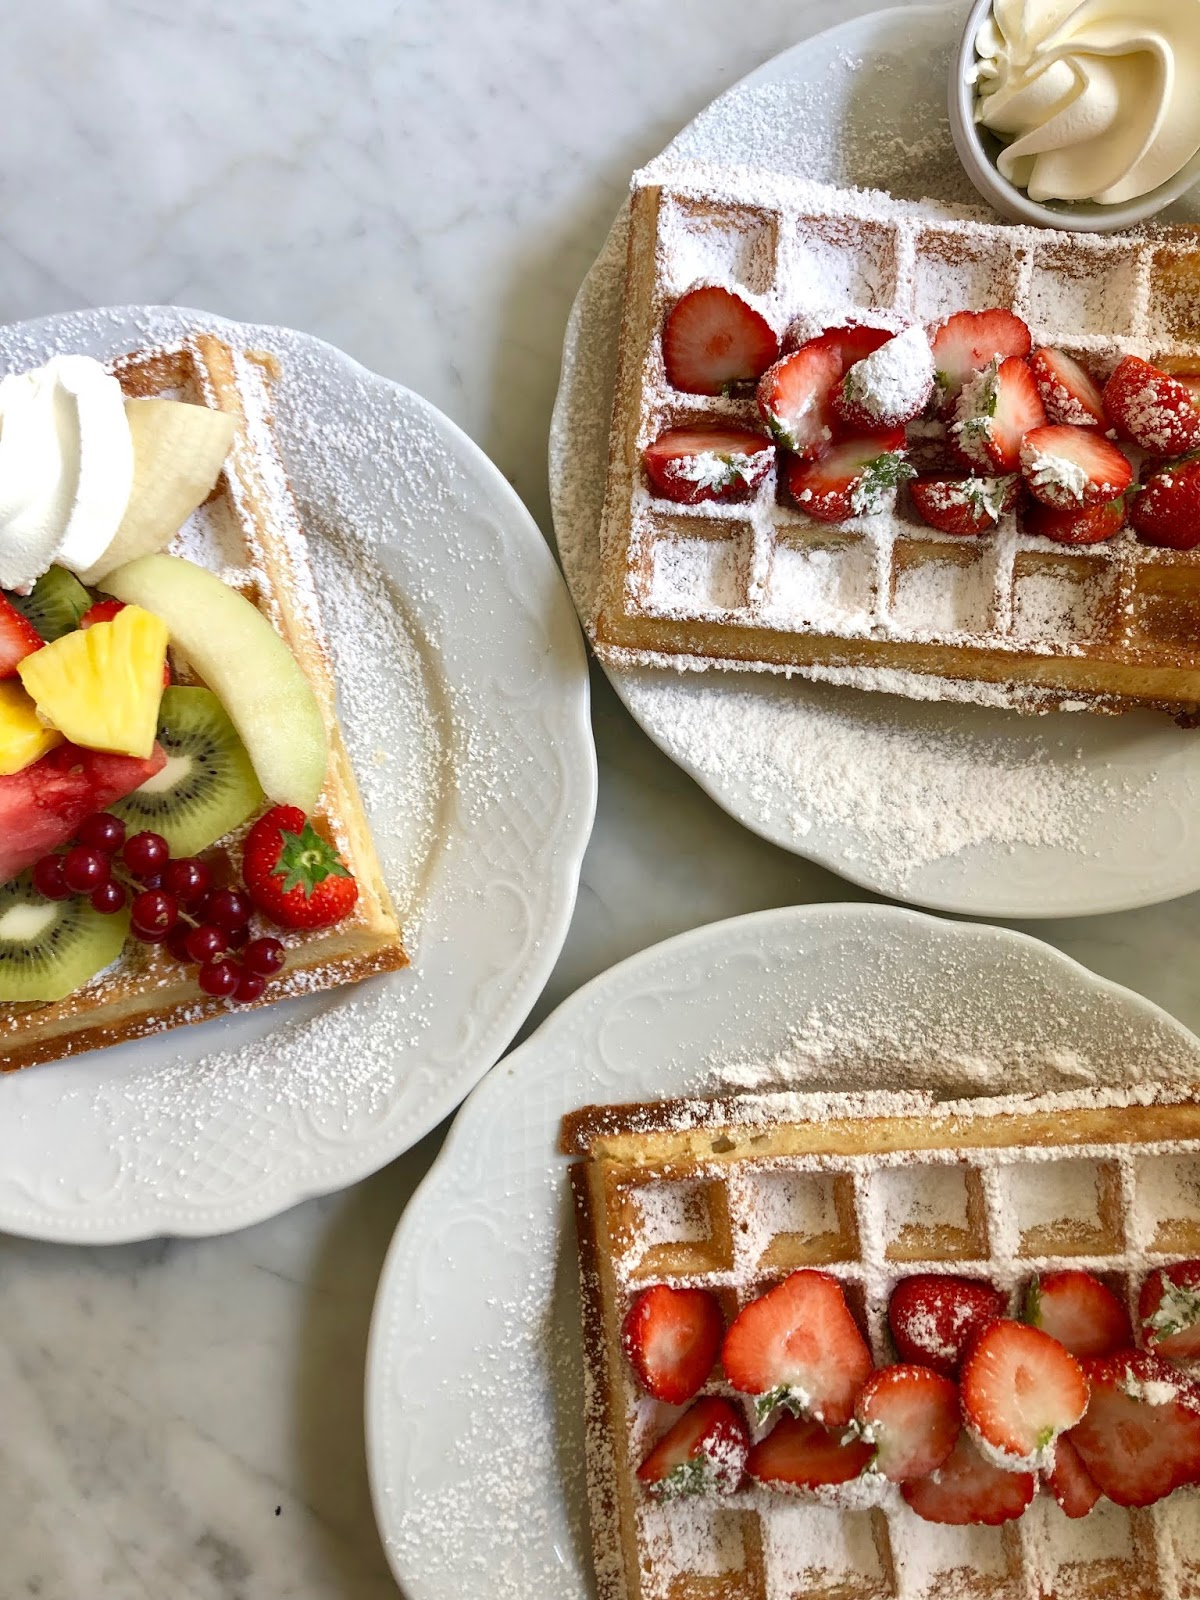 Fashion blogger Kathleen Harper's Brussels waffles from Max restaurant in Ghent, Belgium